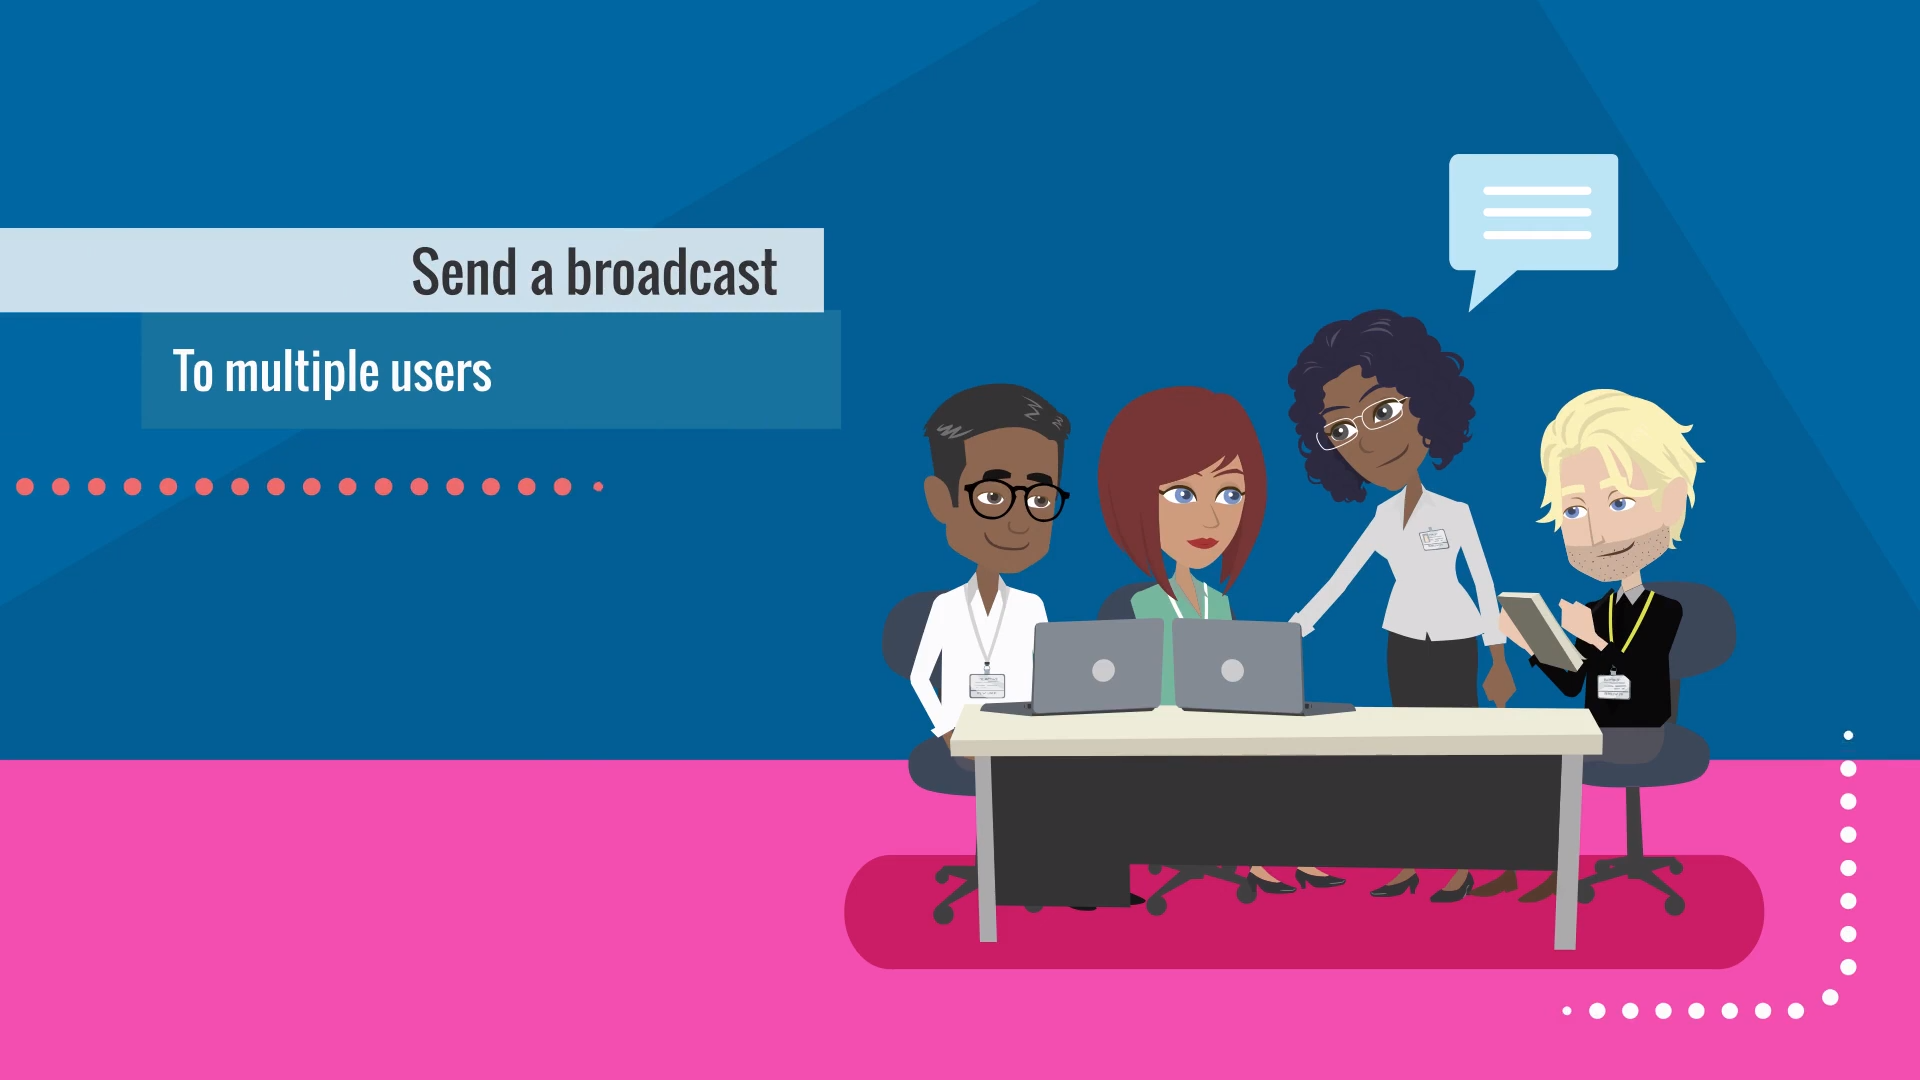 Broadcasting messages to multiple users